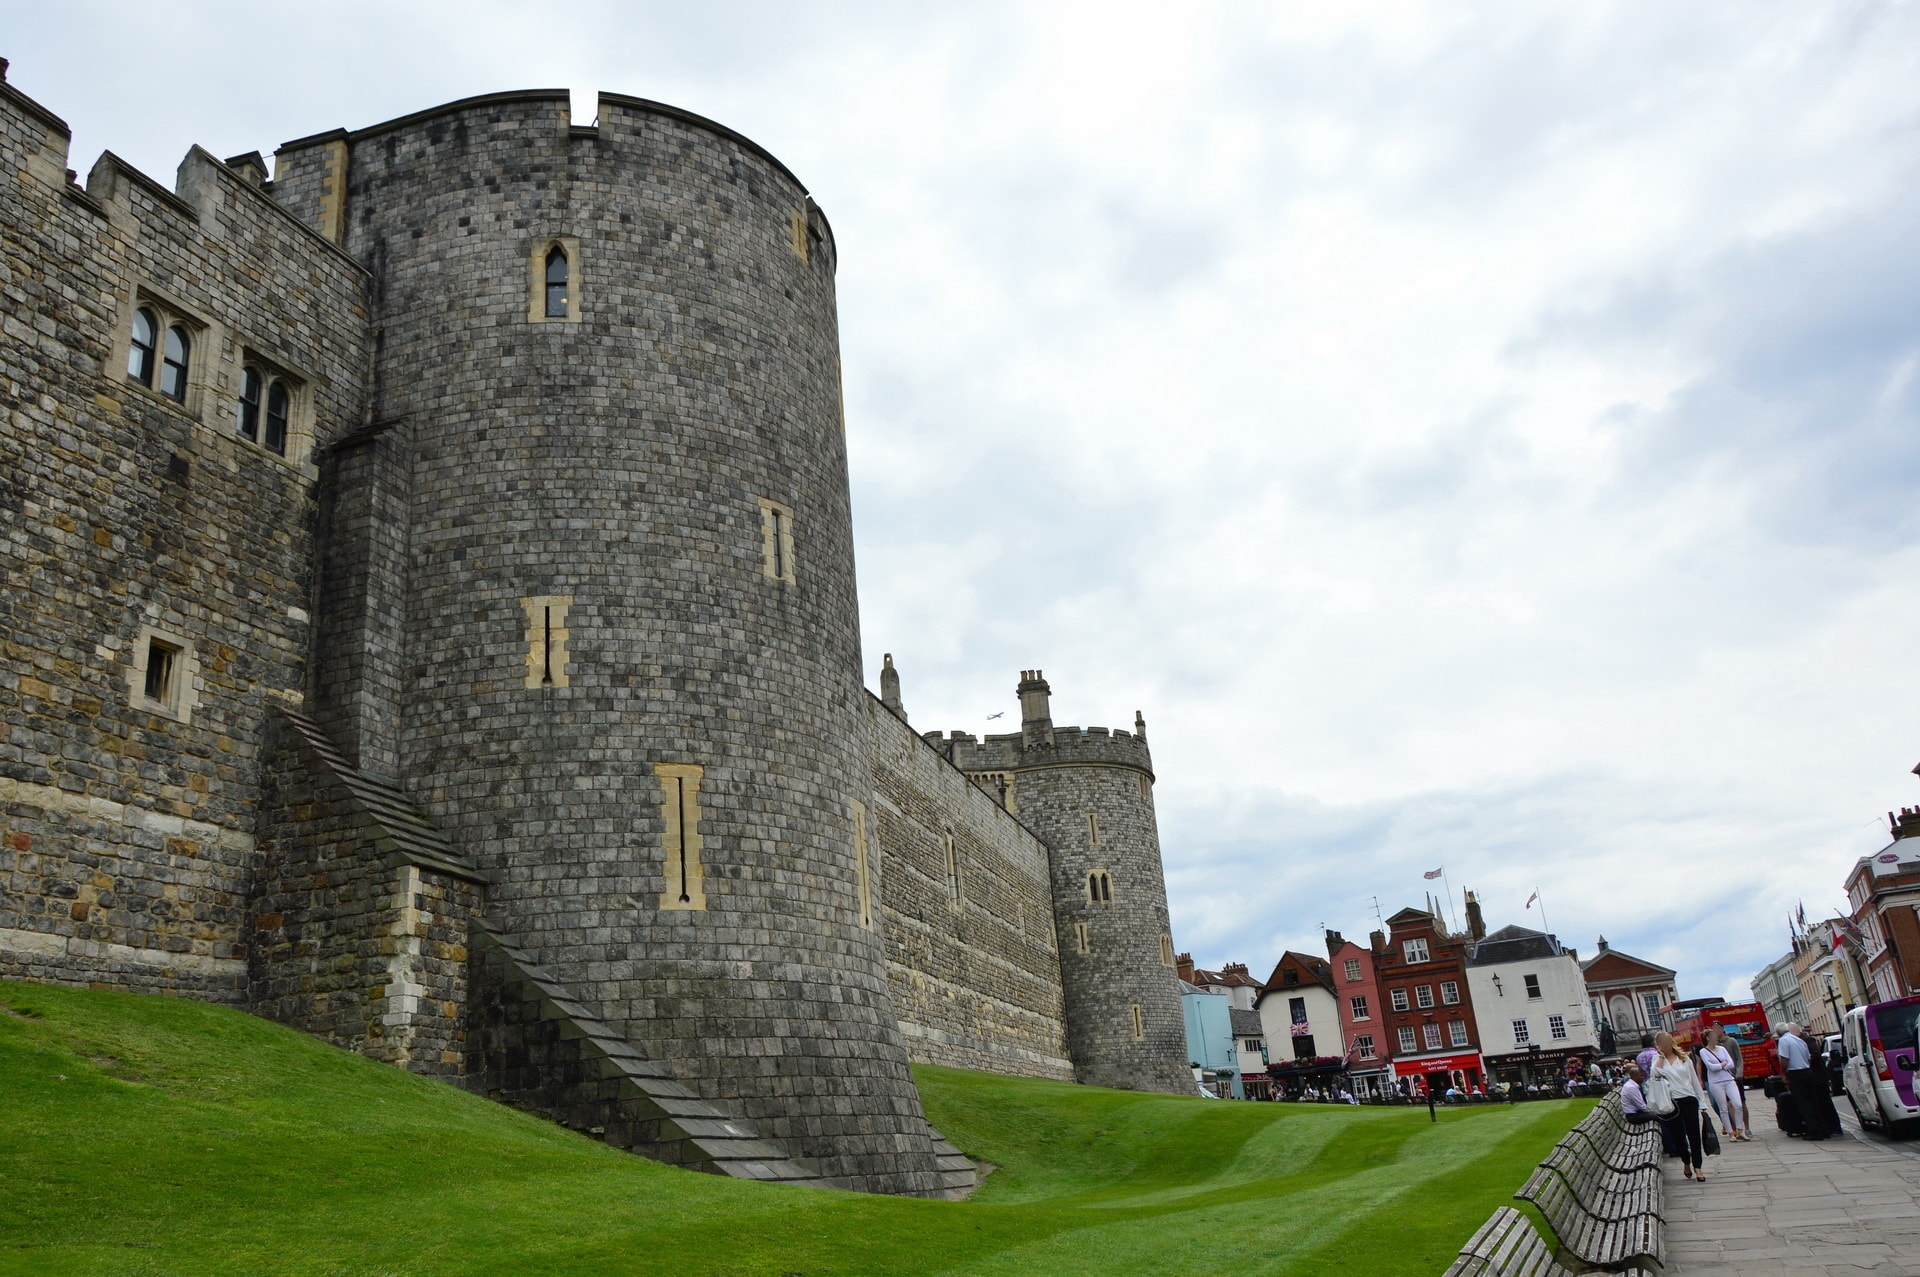 Massive walls of the Windsor Castle